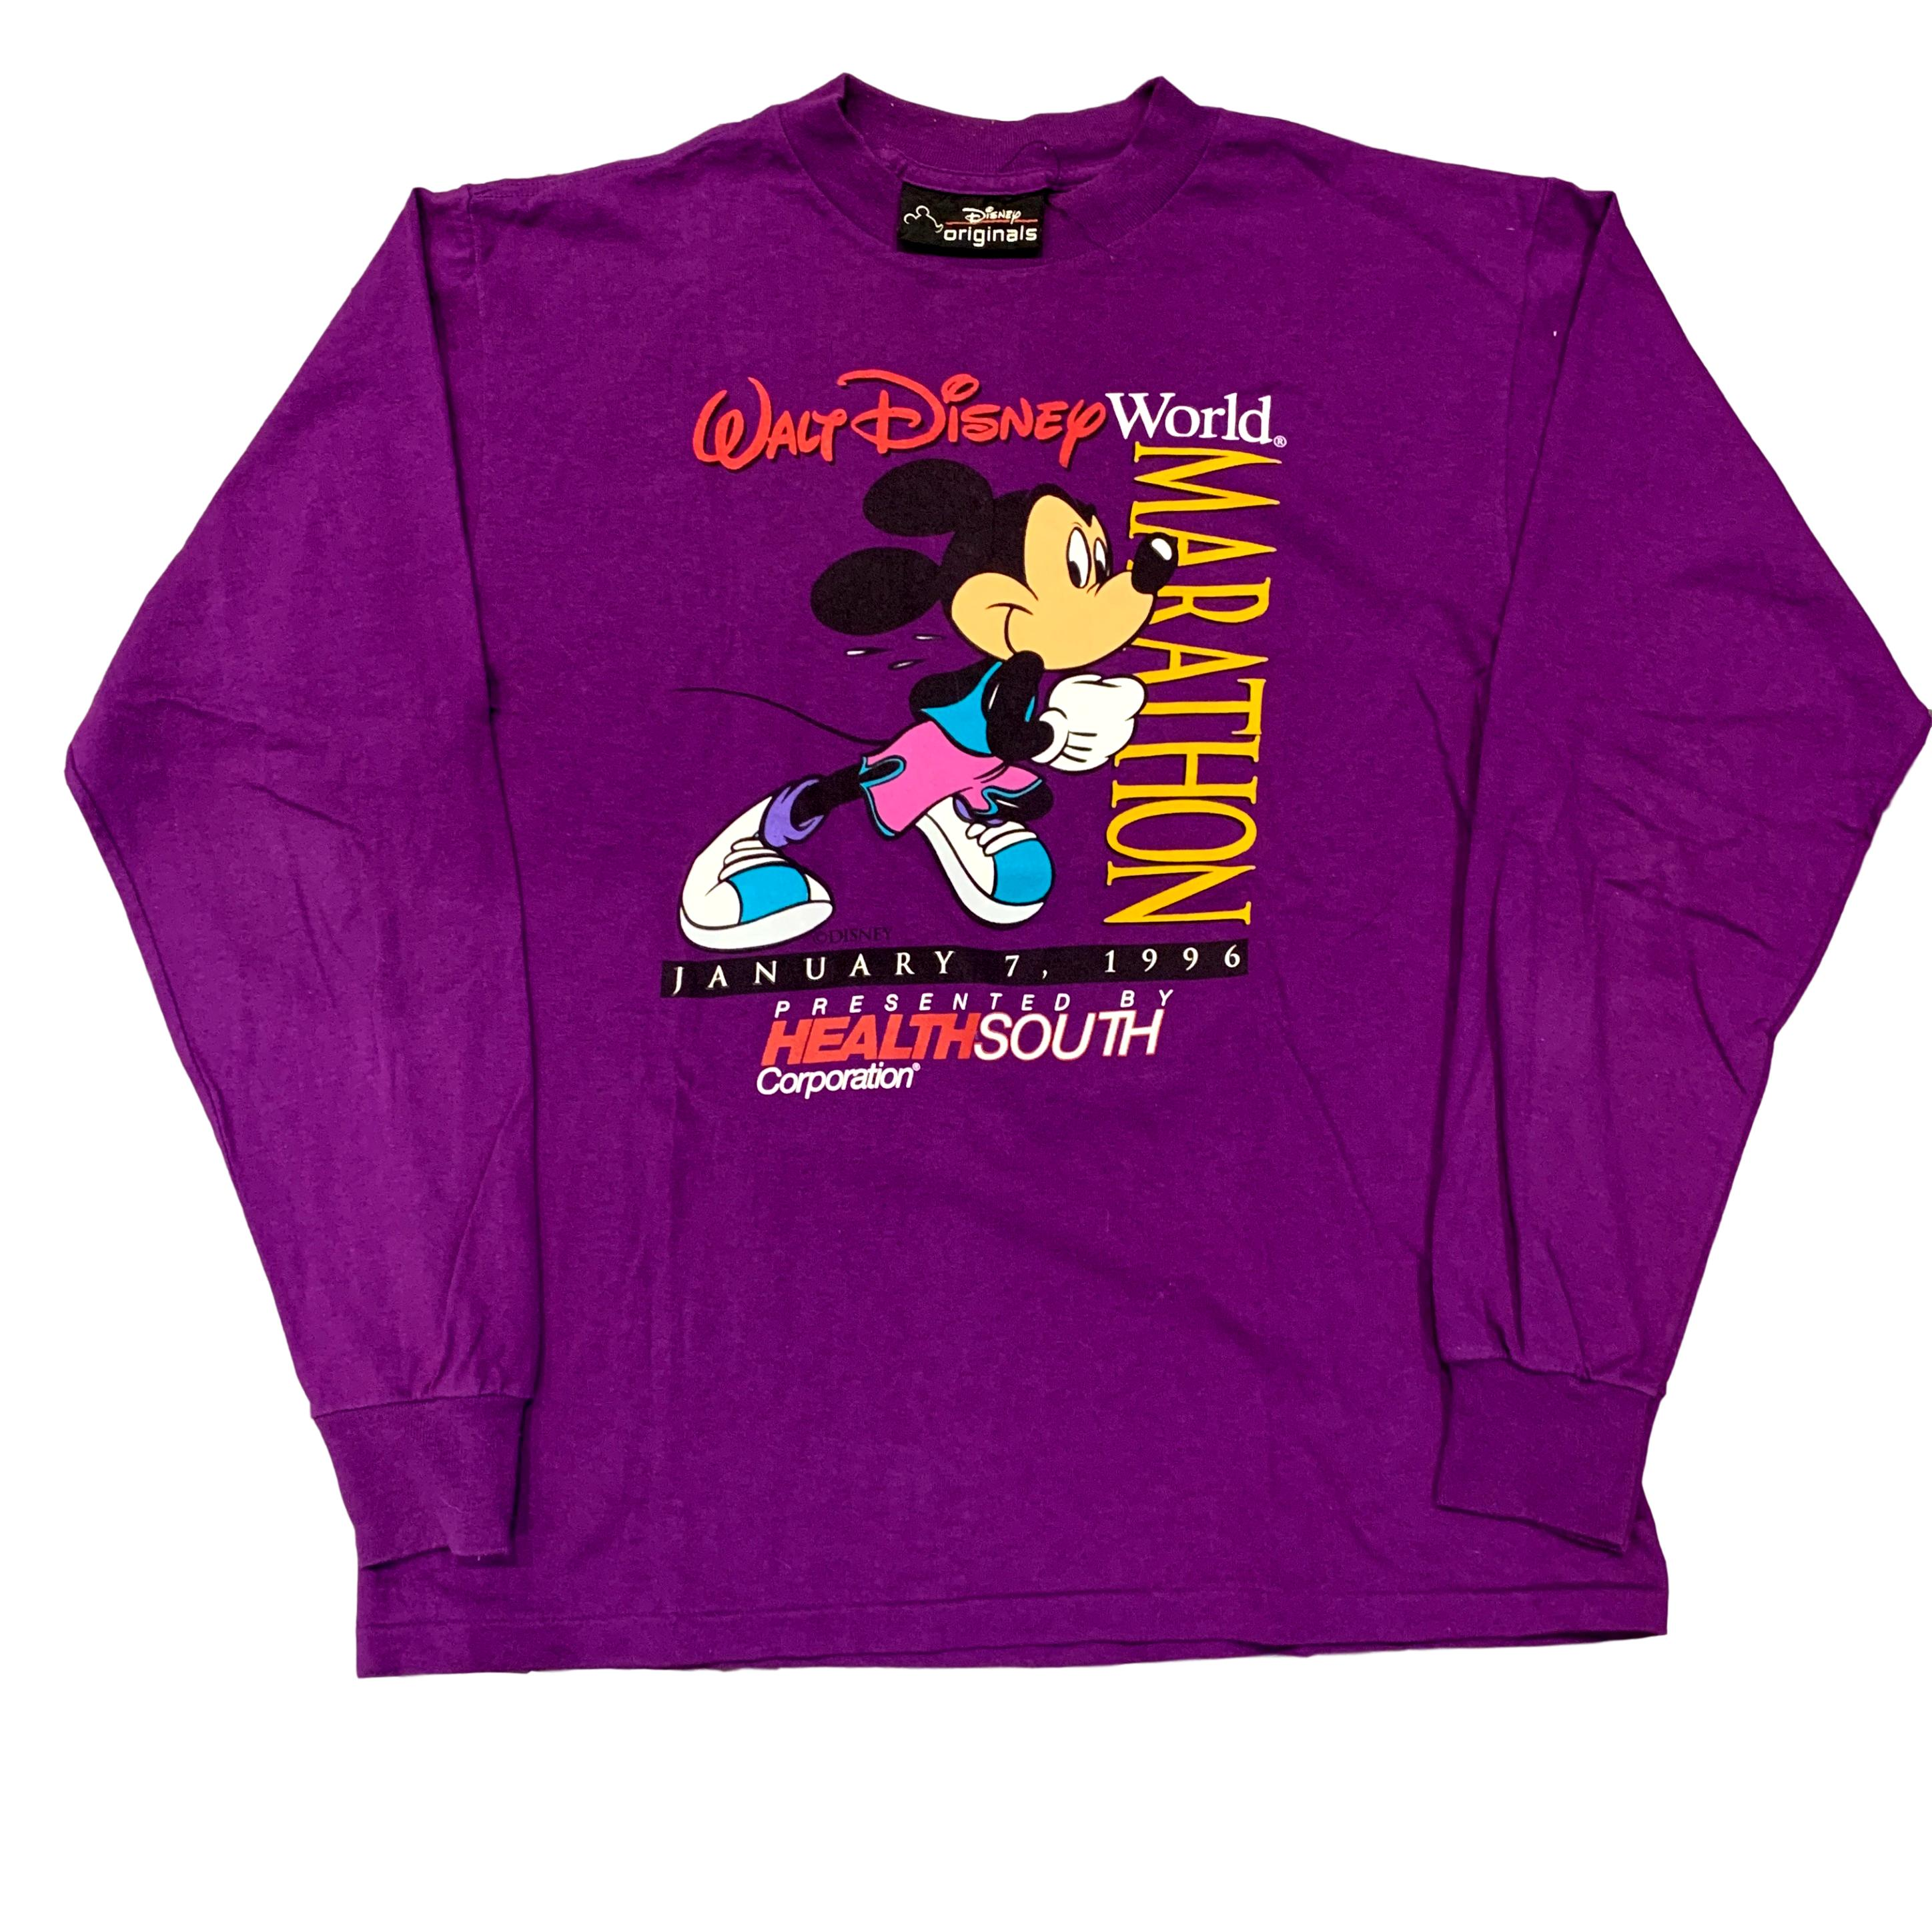 Vintage Walt Disney World 1996 Marathon Long Sleeve T Shirt (L)